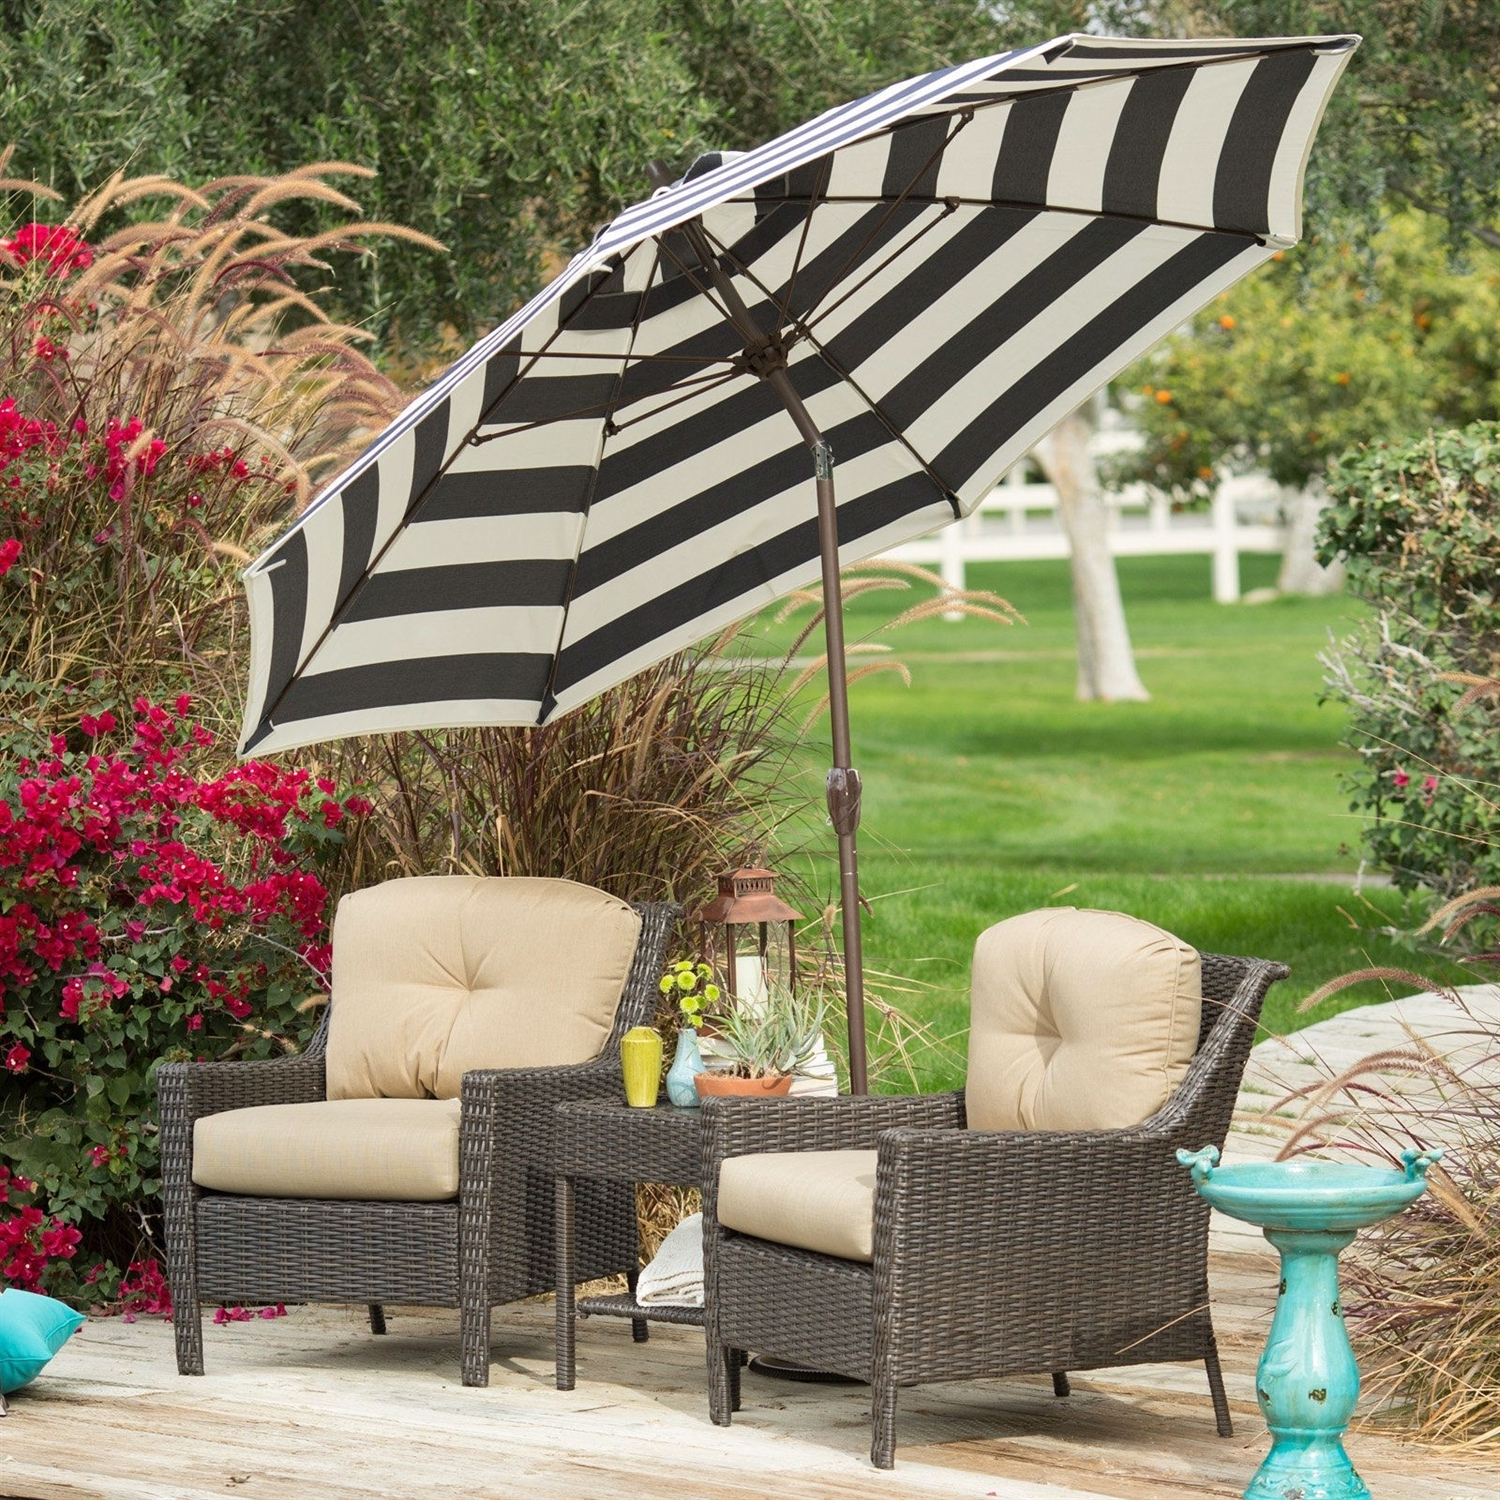 White Patio Umbrellas For Most Popular Stylish 9 Ft Market Patio Umbrella With Crank And Tilt In Dark Navy (View 12 of 20)